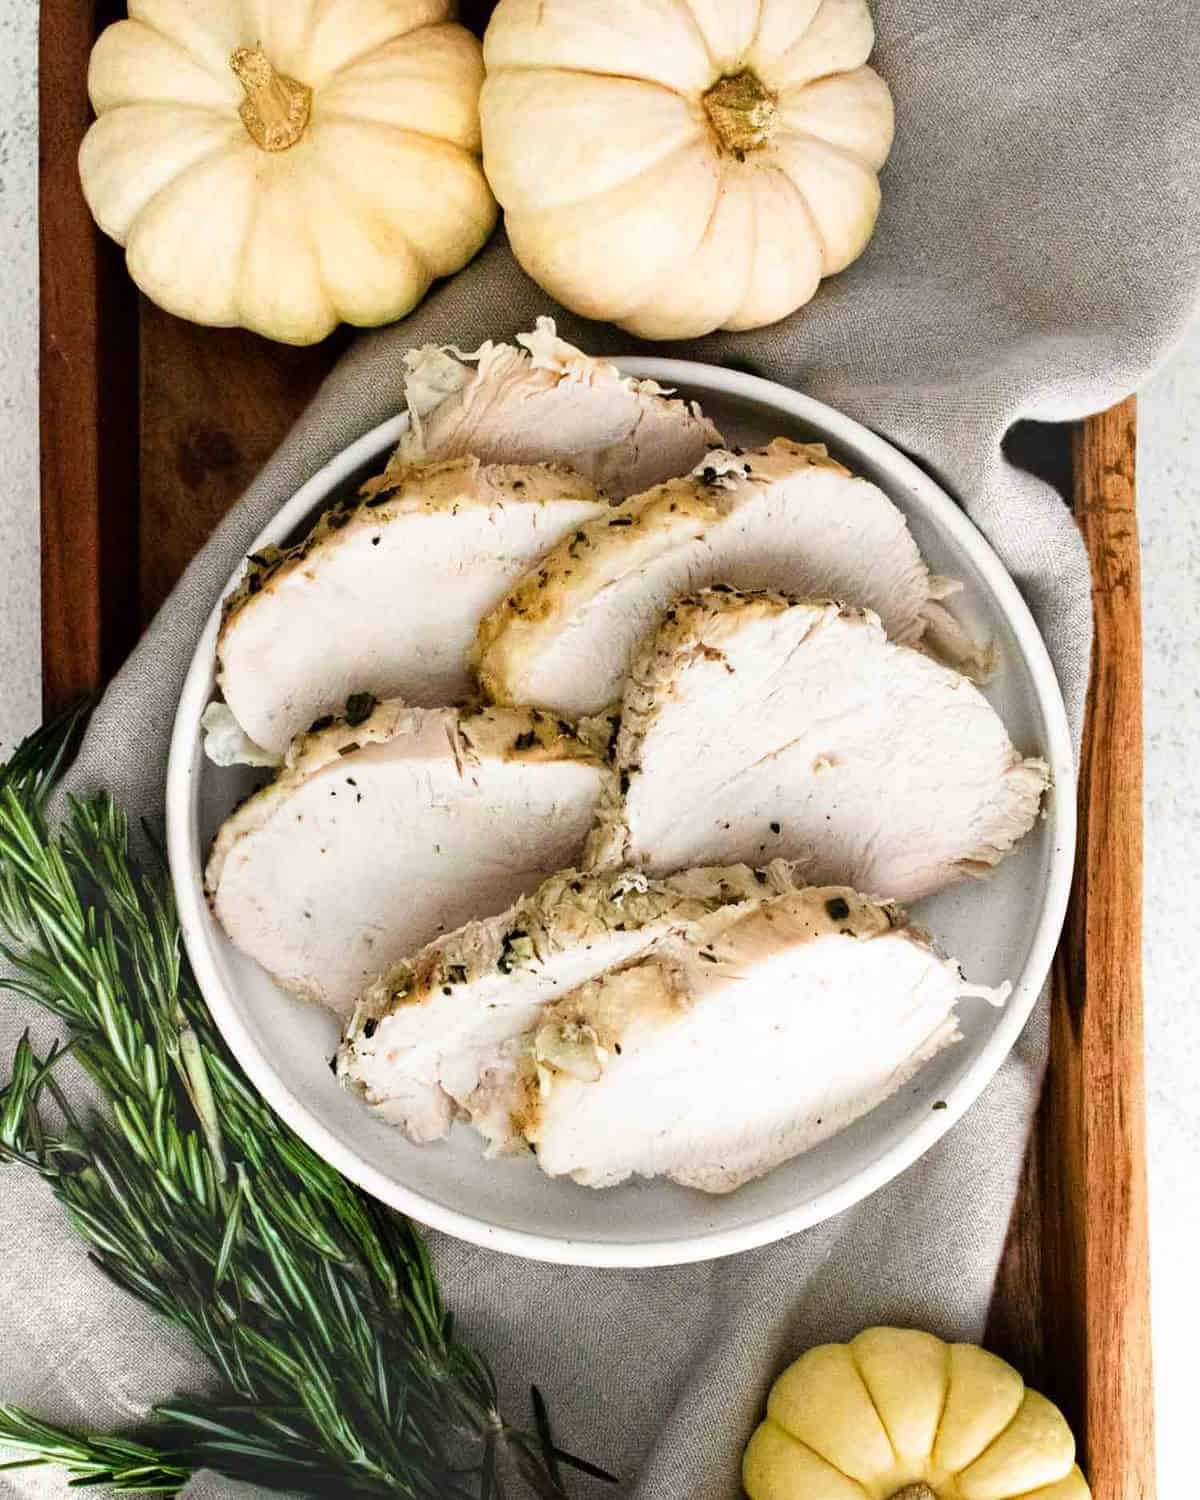 Overhead view of white meat turkey sliced on a white platter.